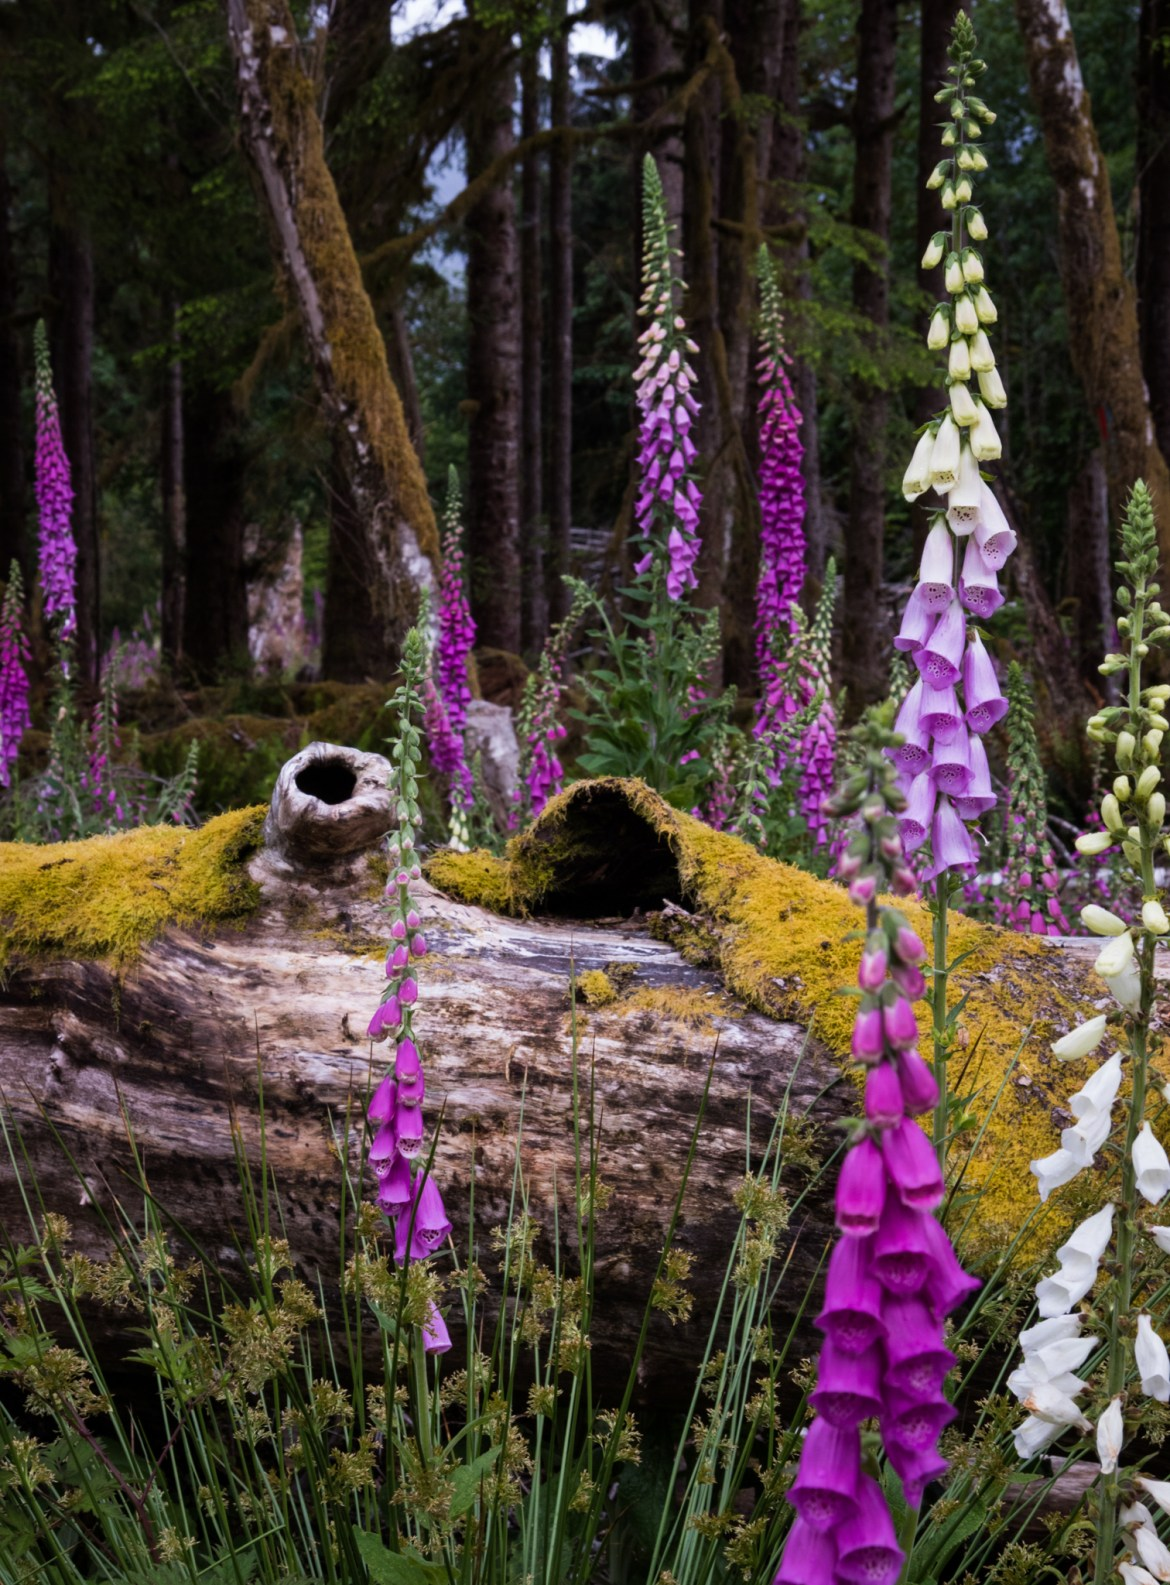 A quick detour off the main roads in Olympic National Park, led me to a clearing used for maintenance and composting. Foxgloves blanketed the ground between dead logs and branches covered in moss.